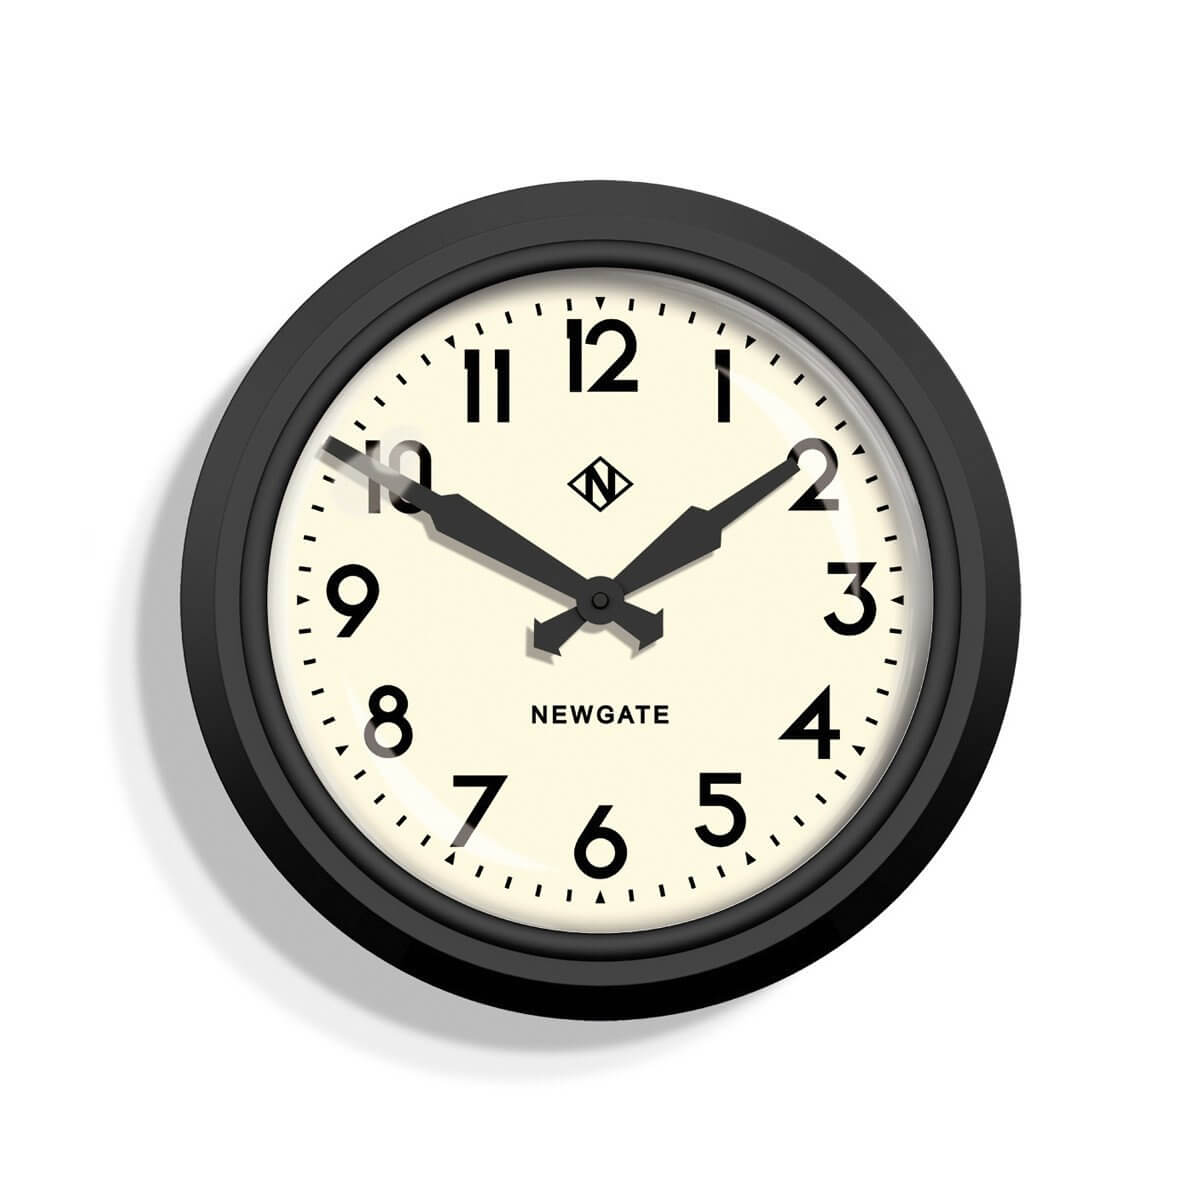 The 50's Electric Clock by Newgate - Matt Black save 30%